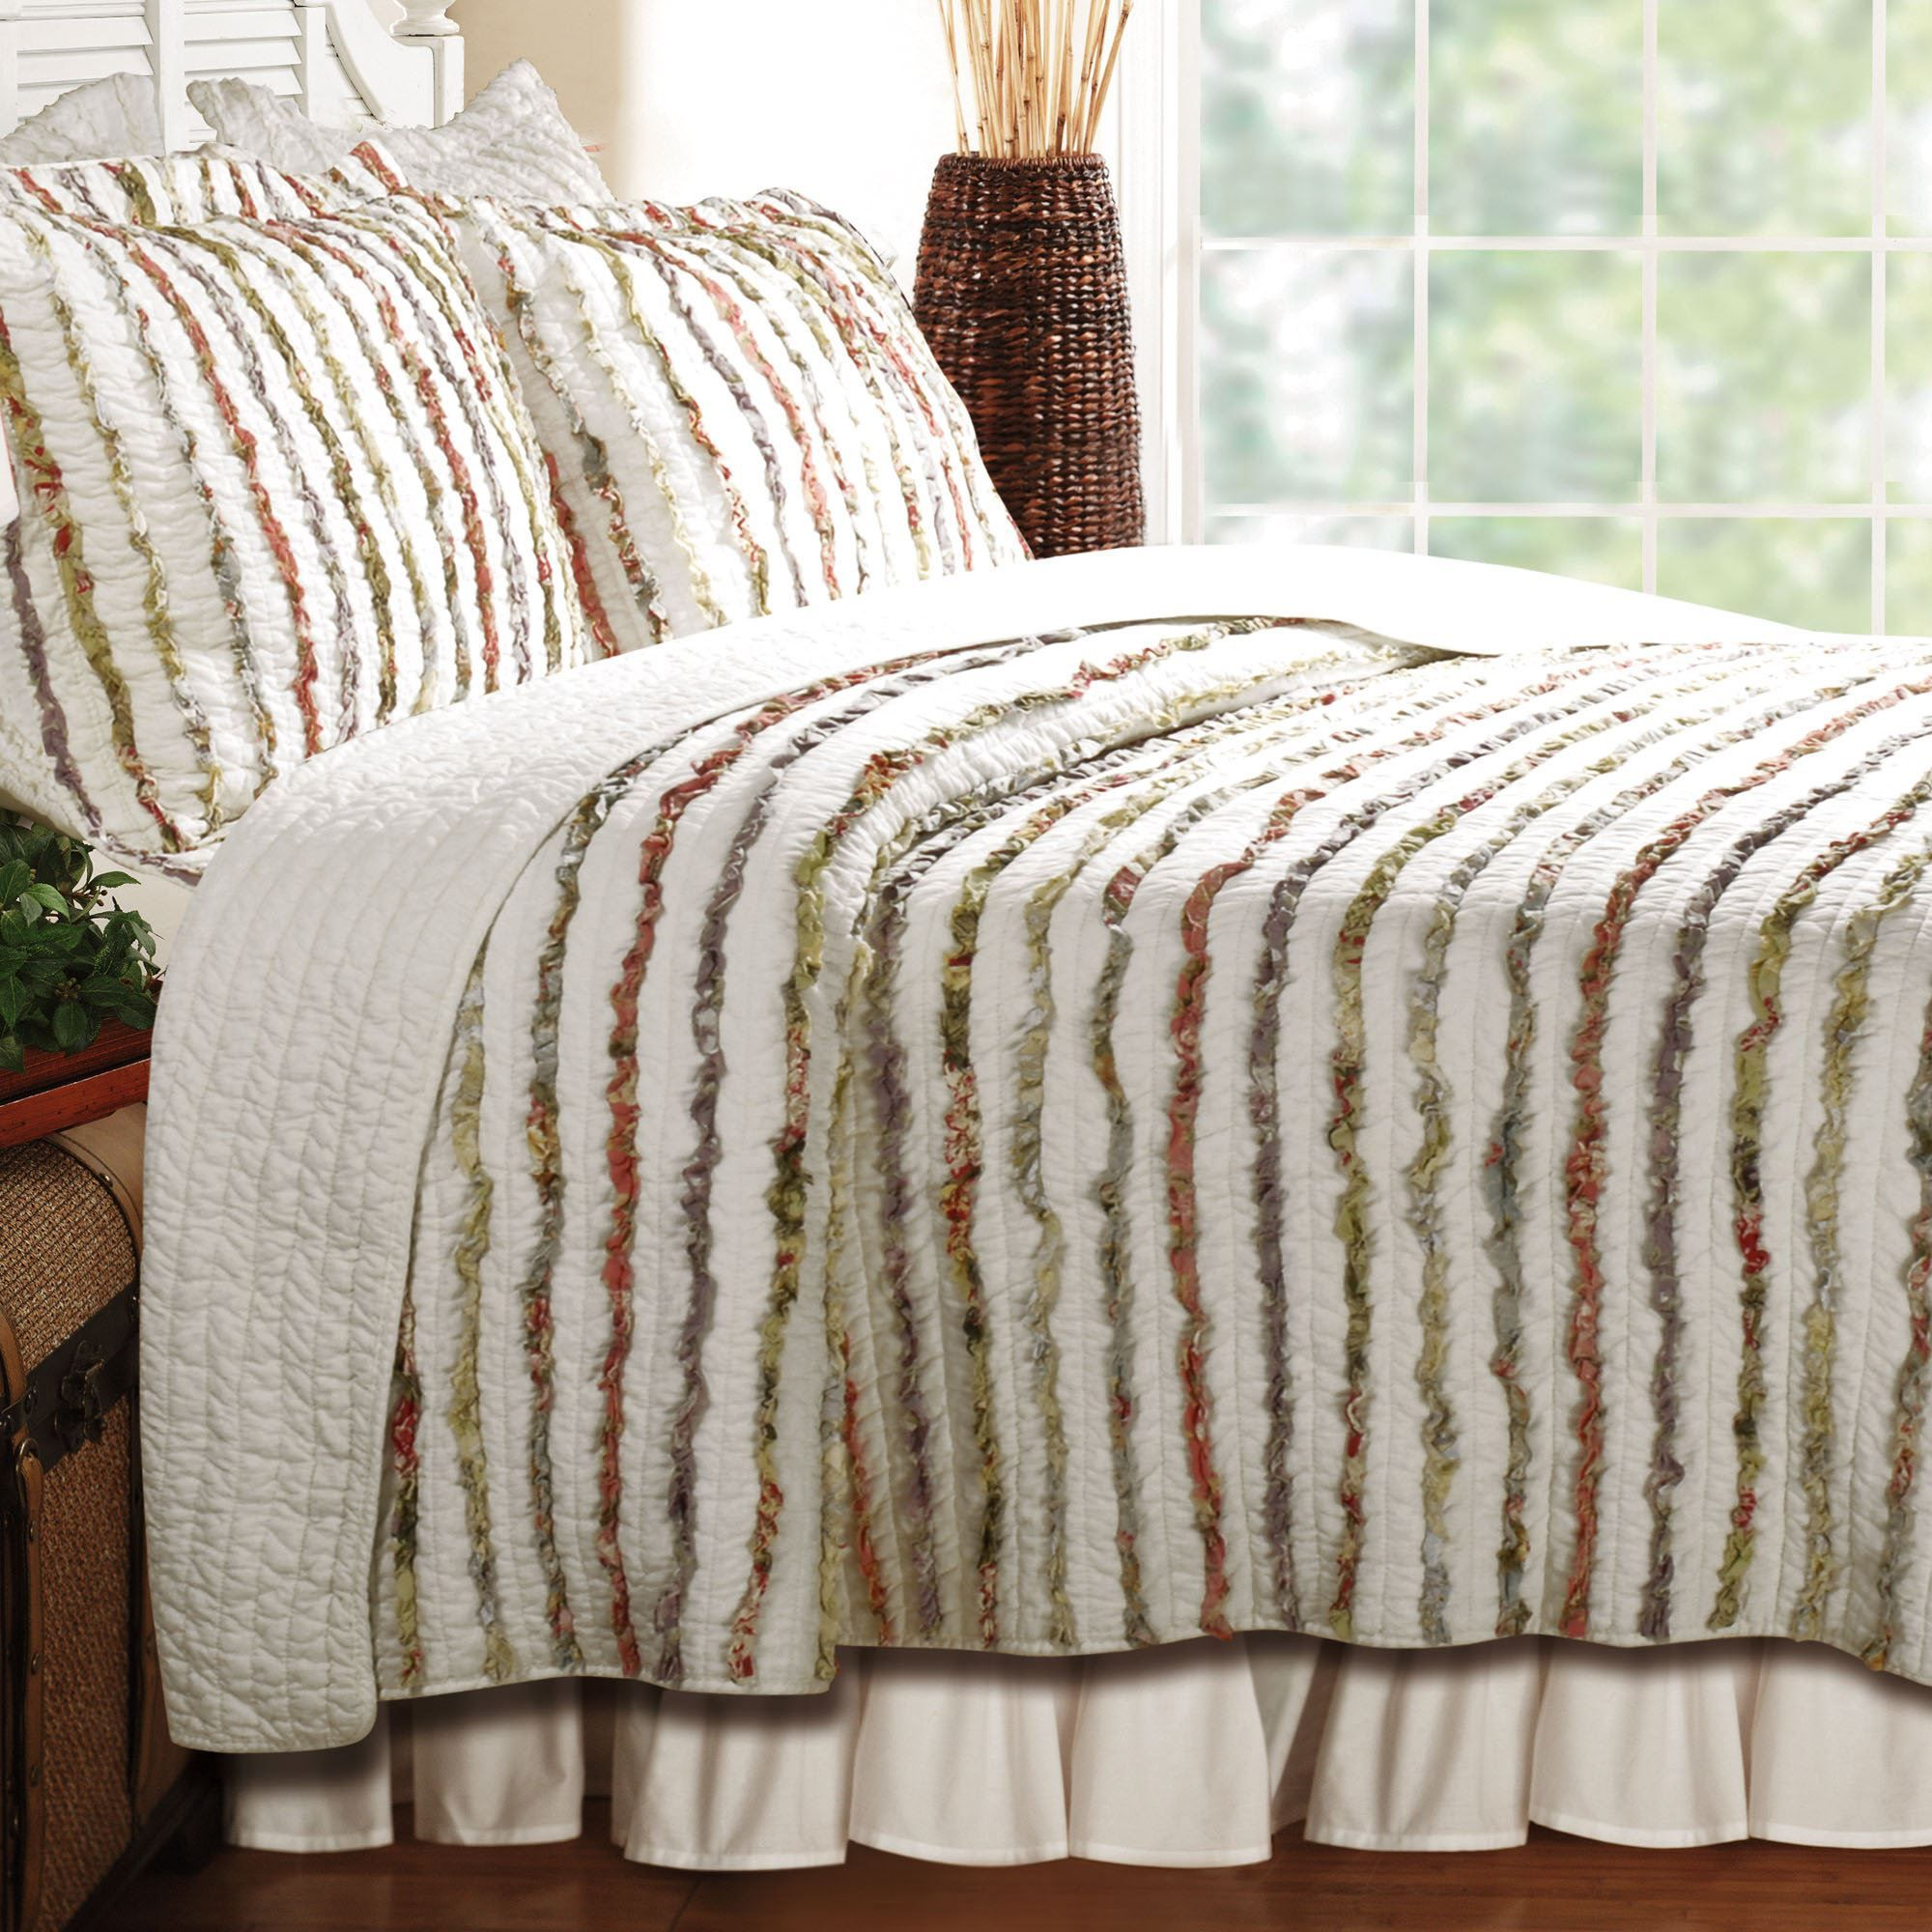 Bella Cotton Ruffle Quilt Bedding Set Quilts Id Like To Make